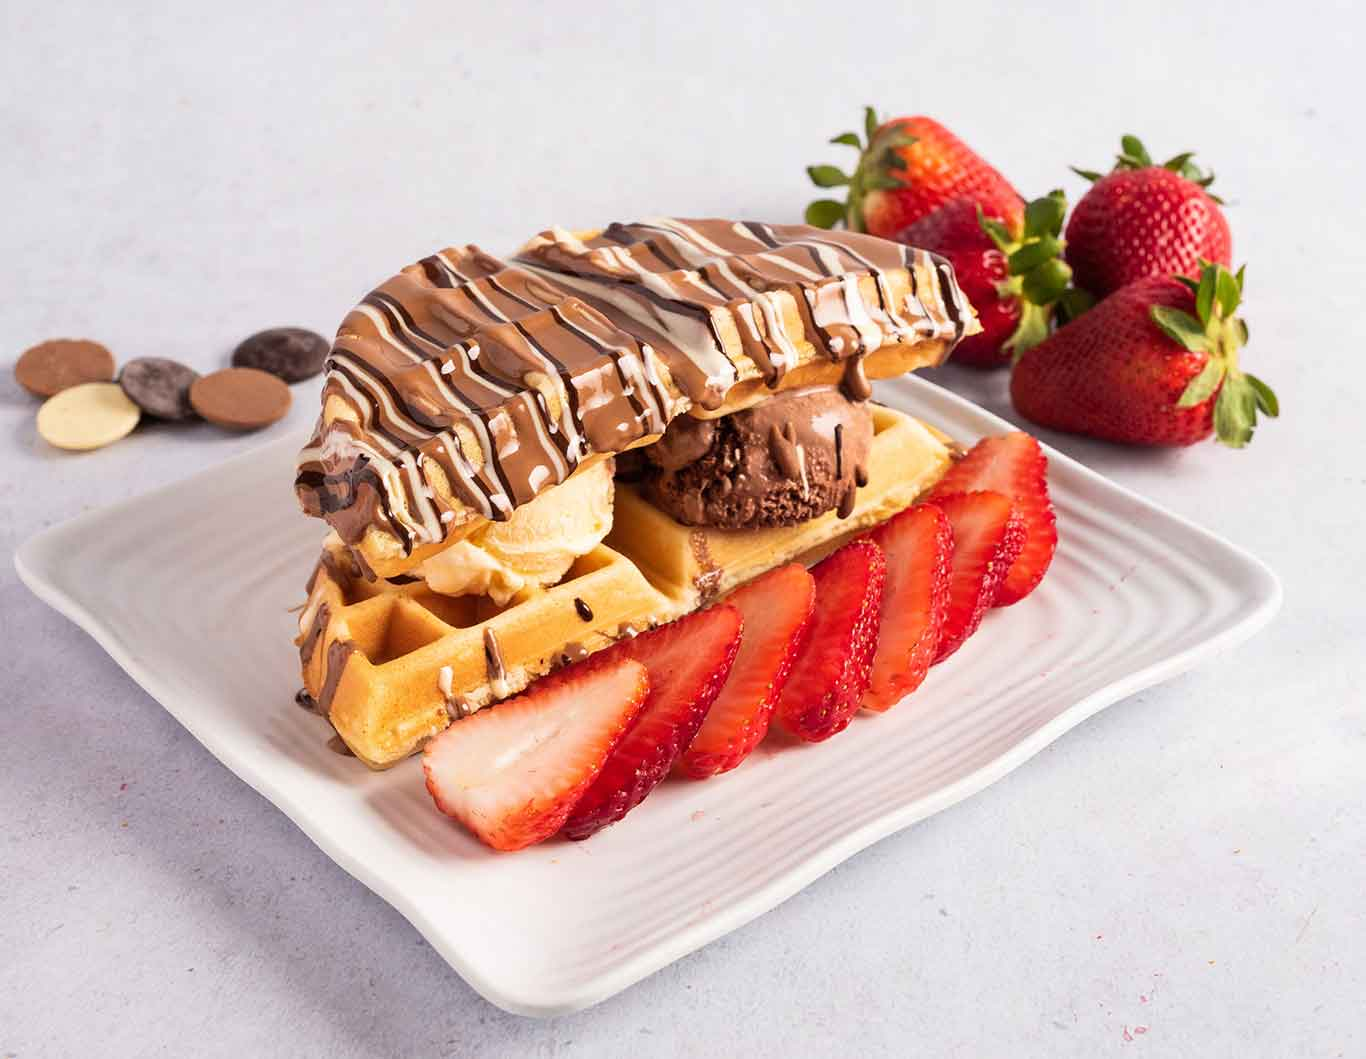 Waffle ice cream sandwich with three types of chocolate drizzles and strawberry slices